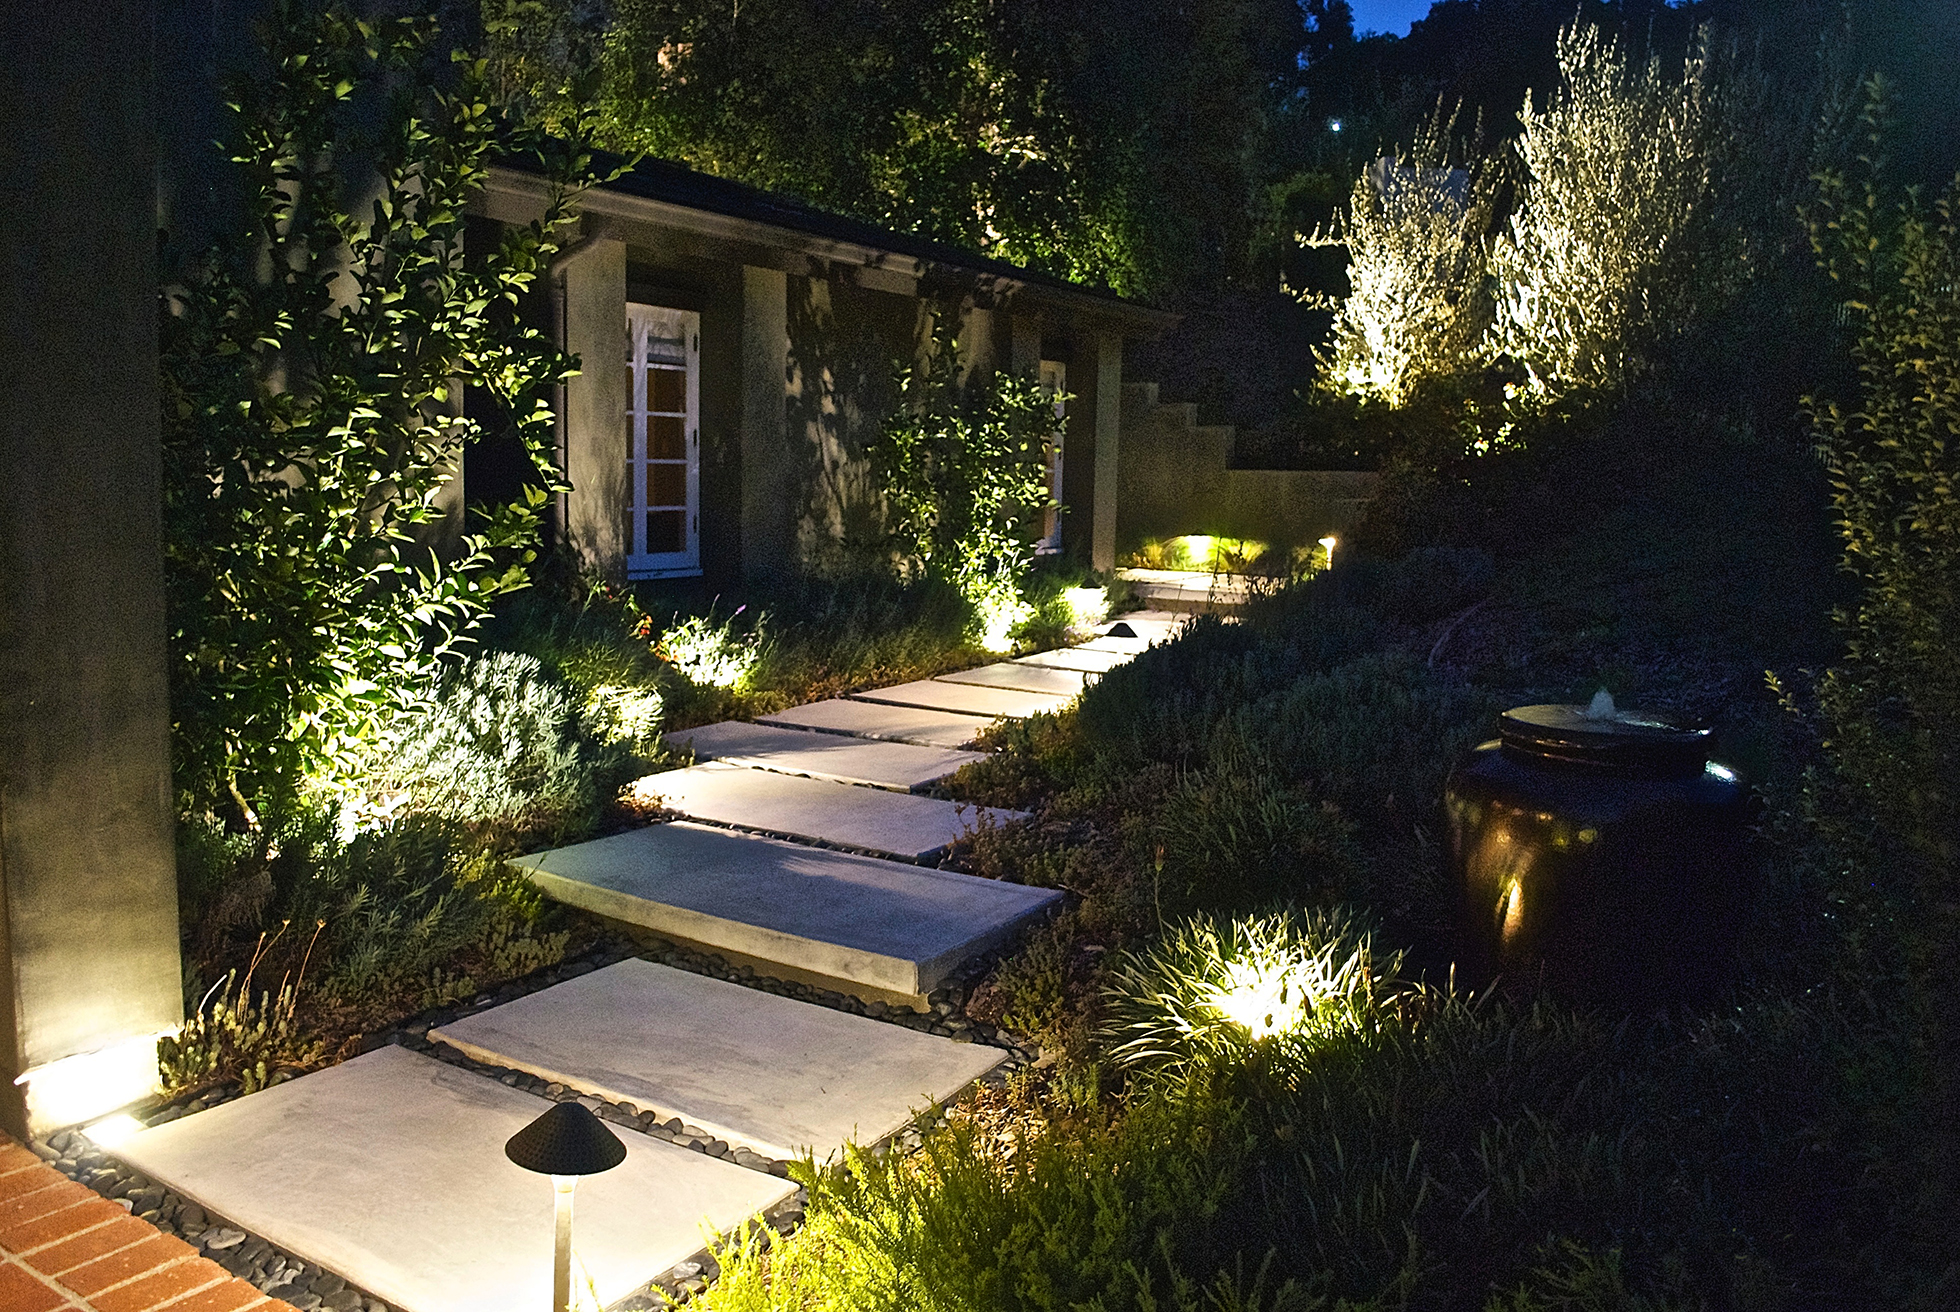 Front yard in Southern California illuminated at night